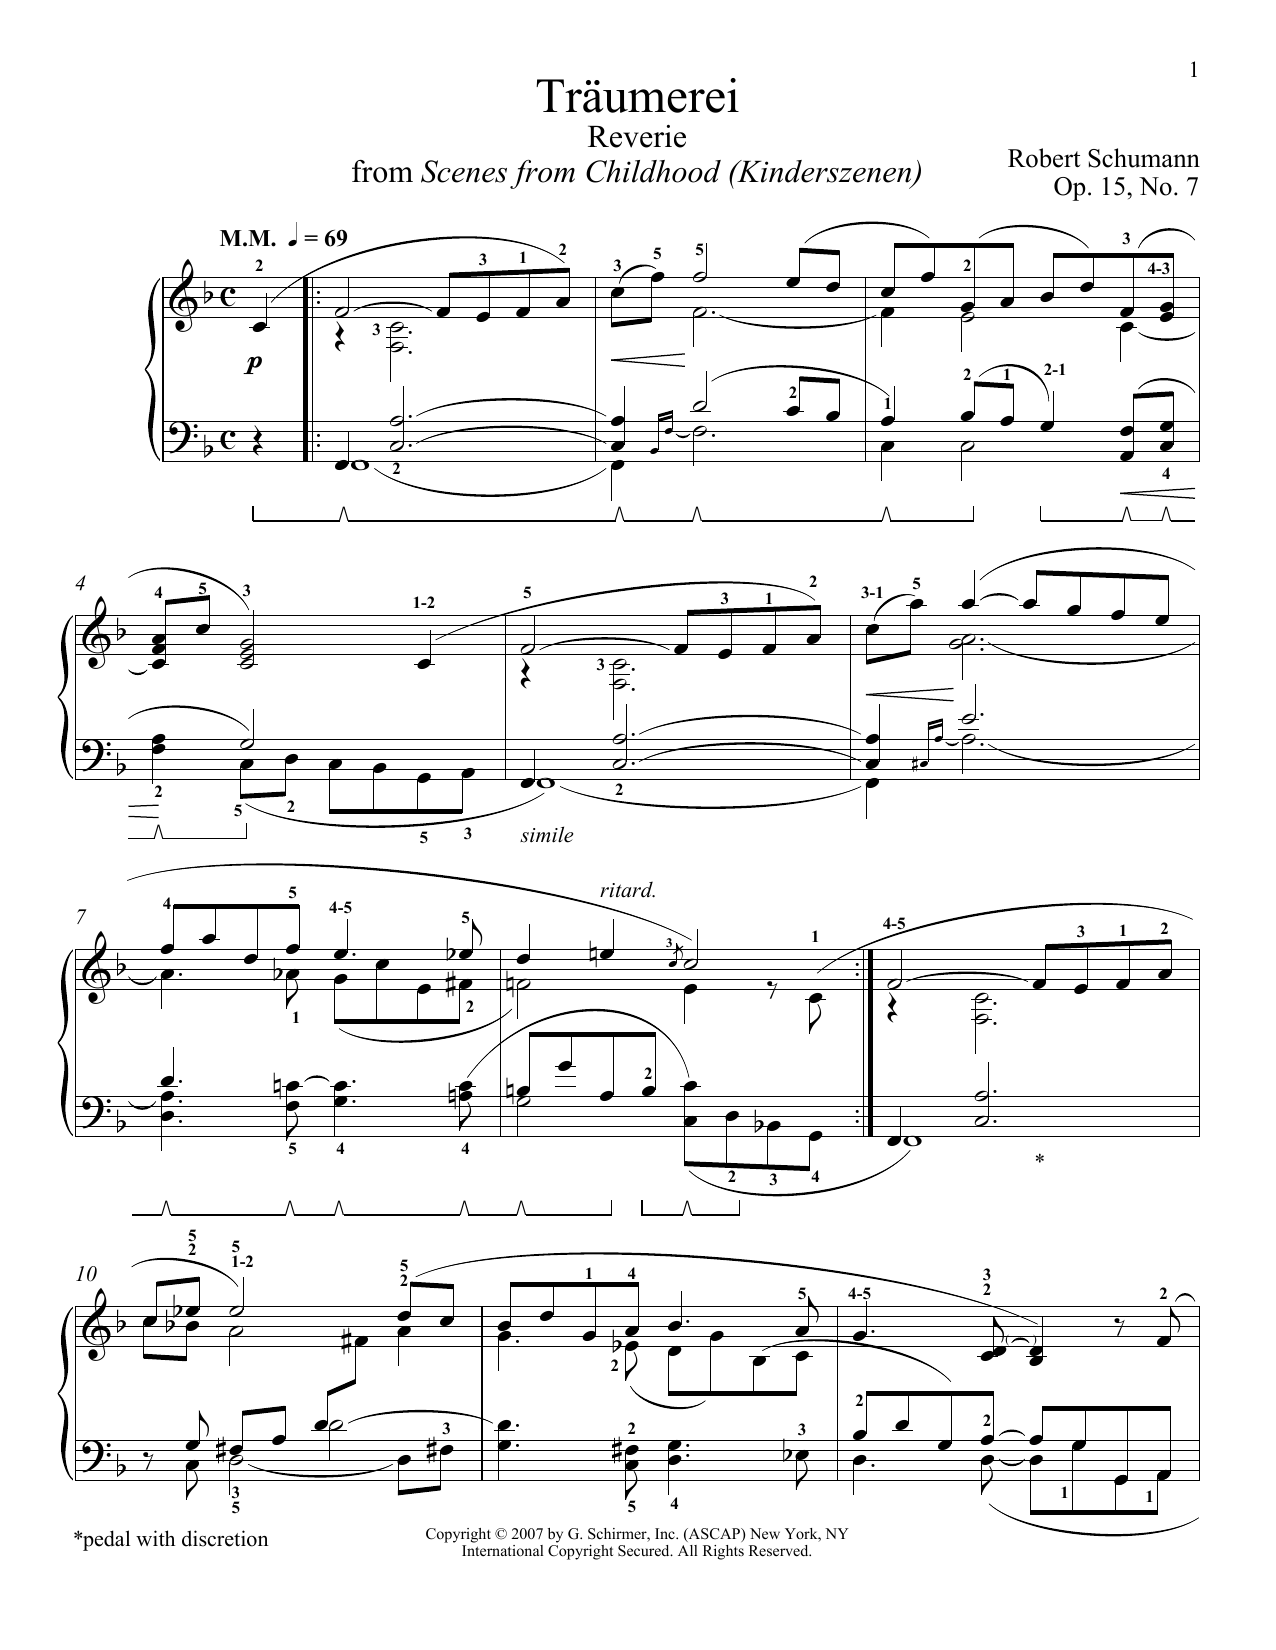 Robert Schumann Traumerei sheet music notes and chords. Download Printable PDF.